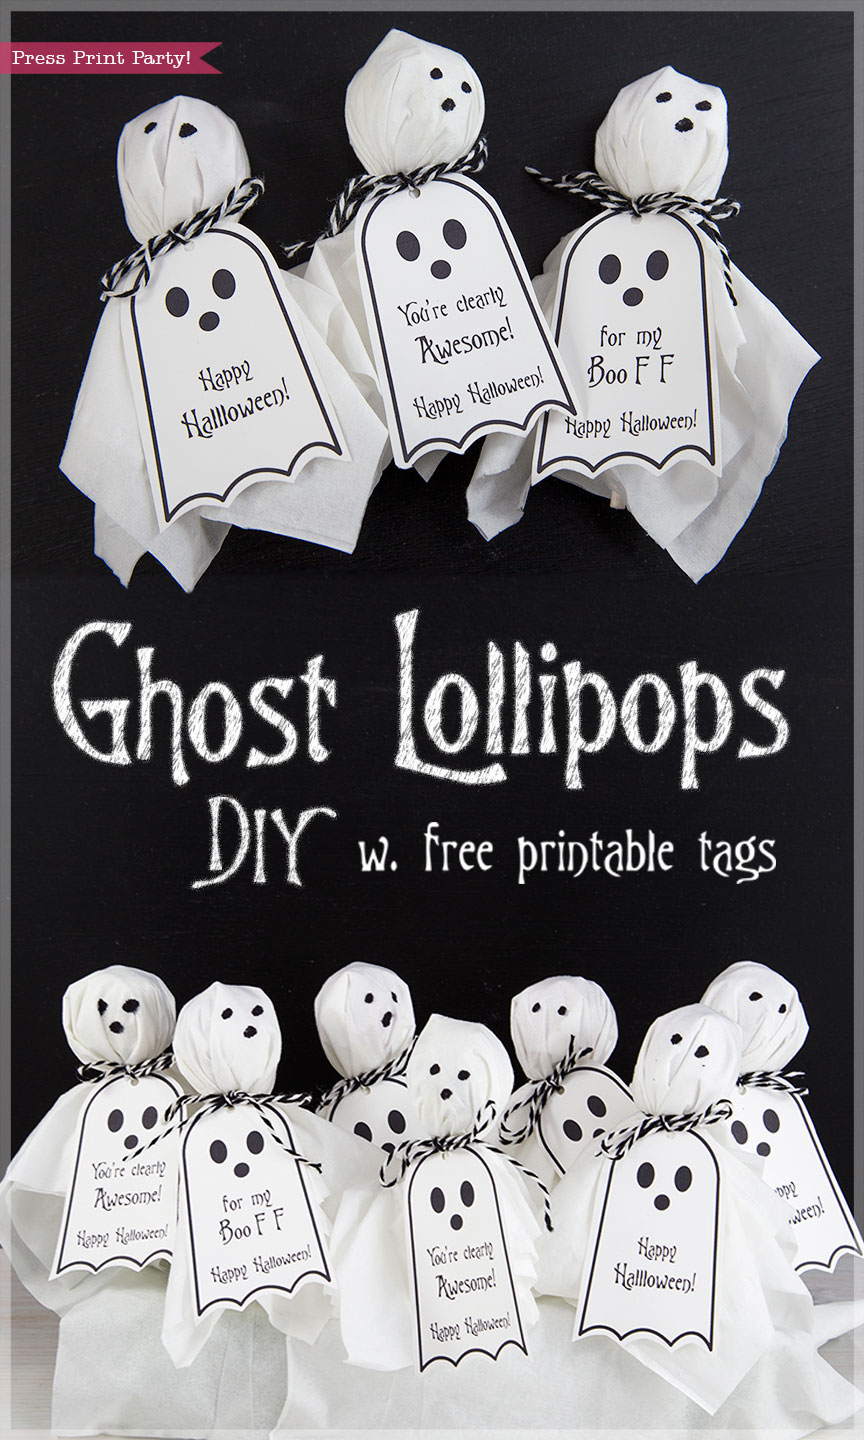 ghost lollipops w free halloween printable tags by press print party